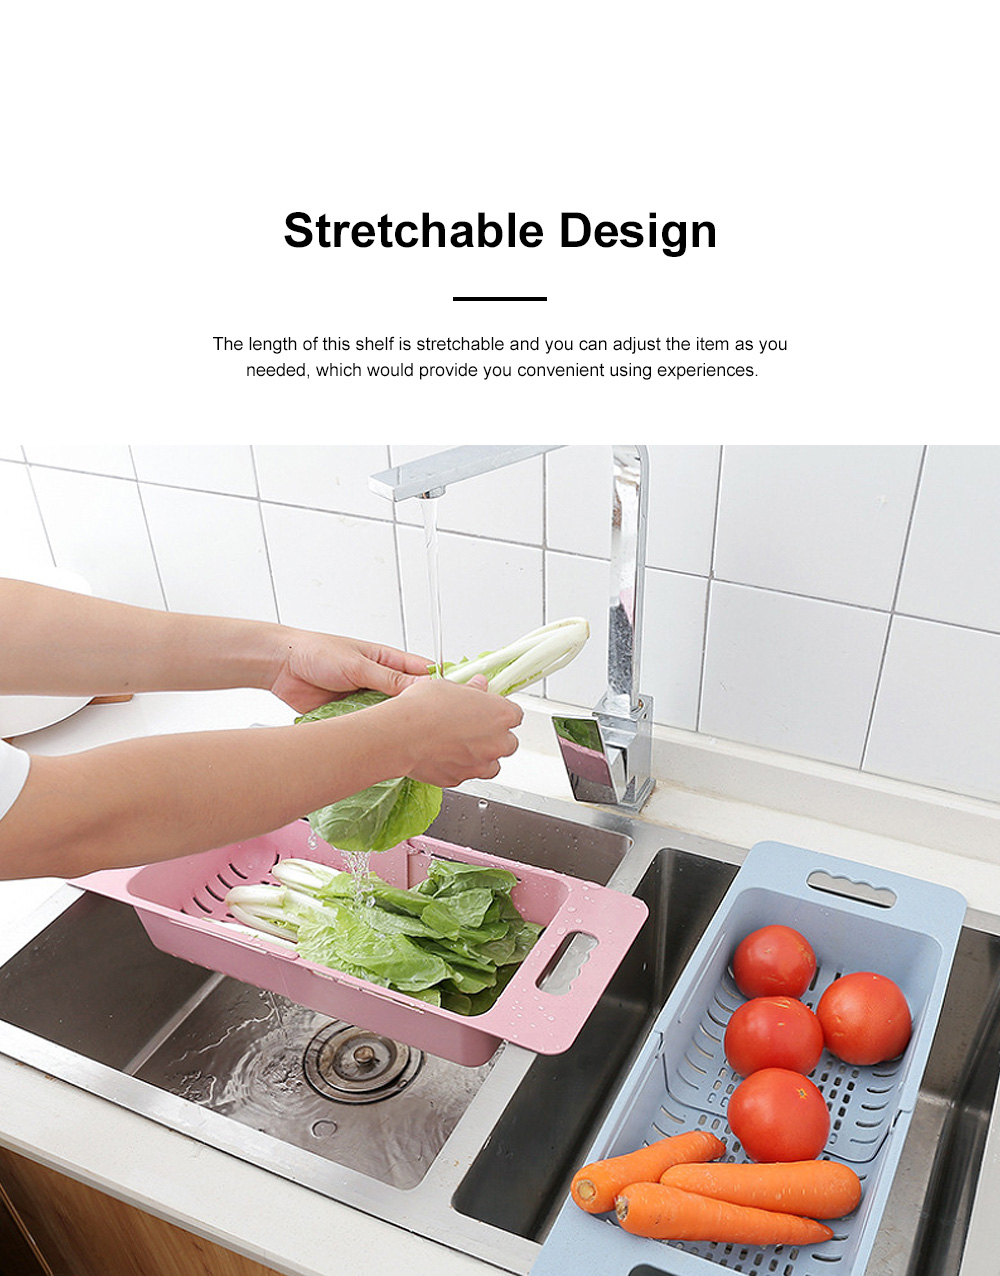 Functional Environmentally-friendly Wheat Straw Stretchable Vegetable Fruit Water Sink Draining Shelf Basket Storage Rack 1